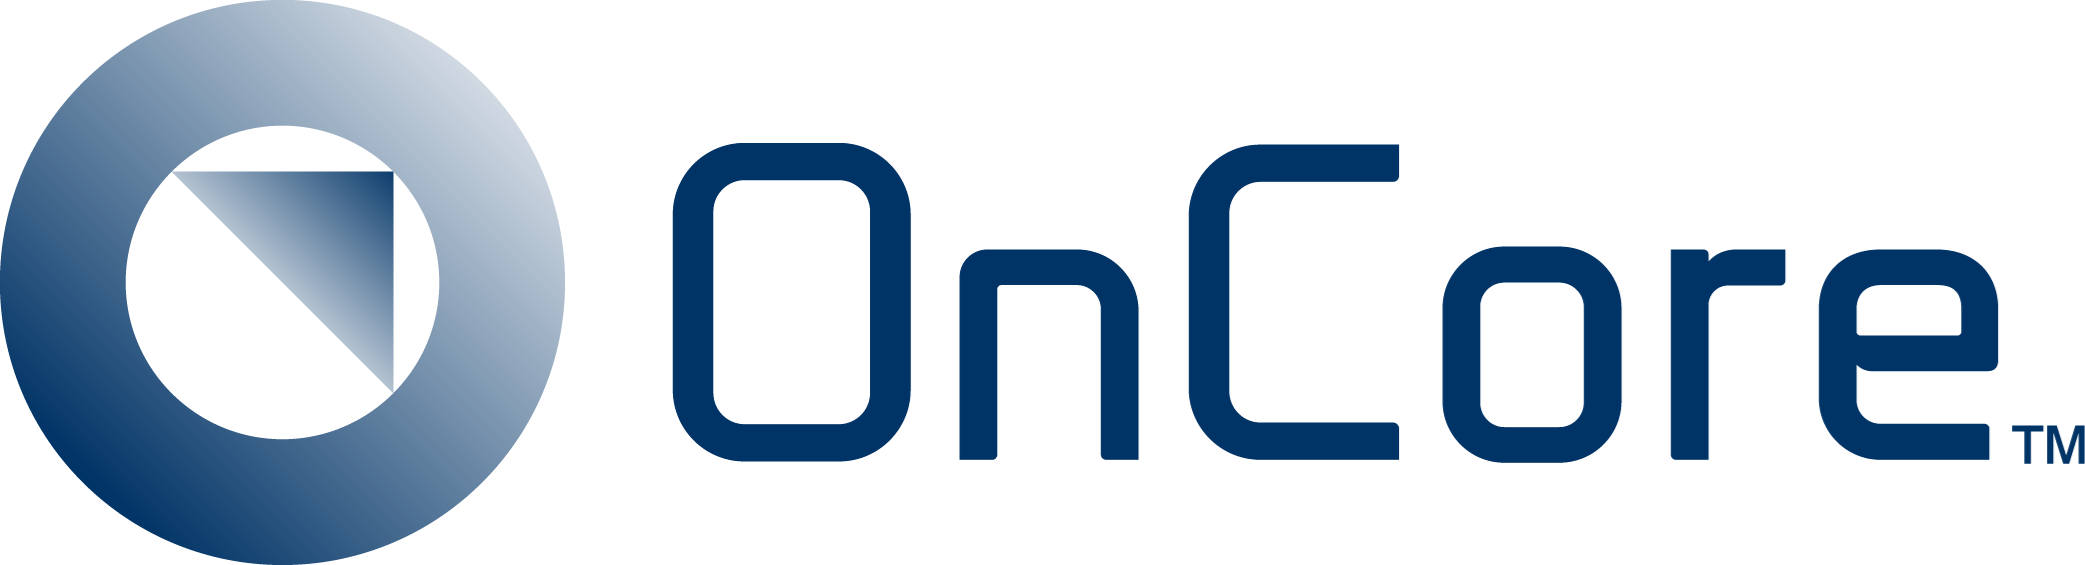 logo-oncore-largetrimmed